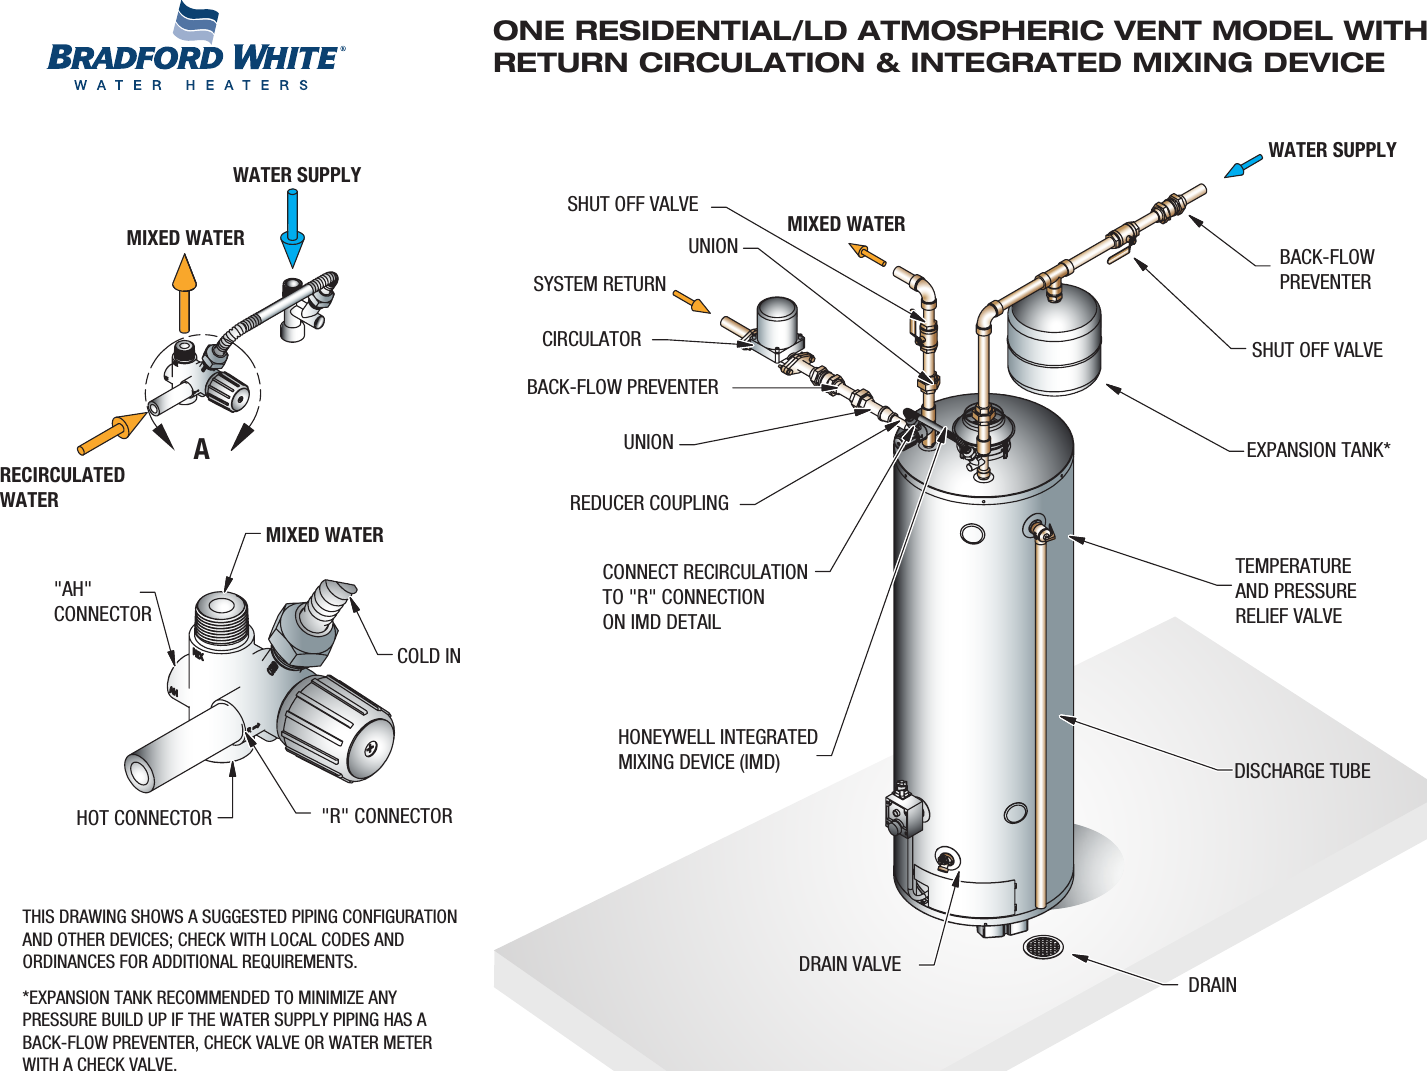 Bradfordwhite Piping Diagram Residential Gas With Integrated Mixing Device  Honeywell Imd Single Water Heater And Return Circulation  33403_GX__WITH_HONEYWELL_MIXING_DEVICE_AND_RETURN_CIRCULATION User ManualUserManual.wiki